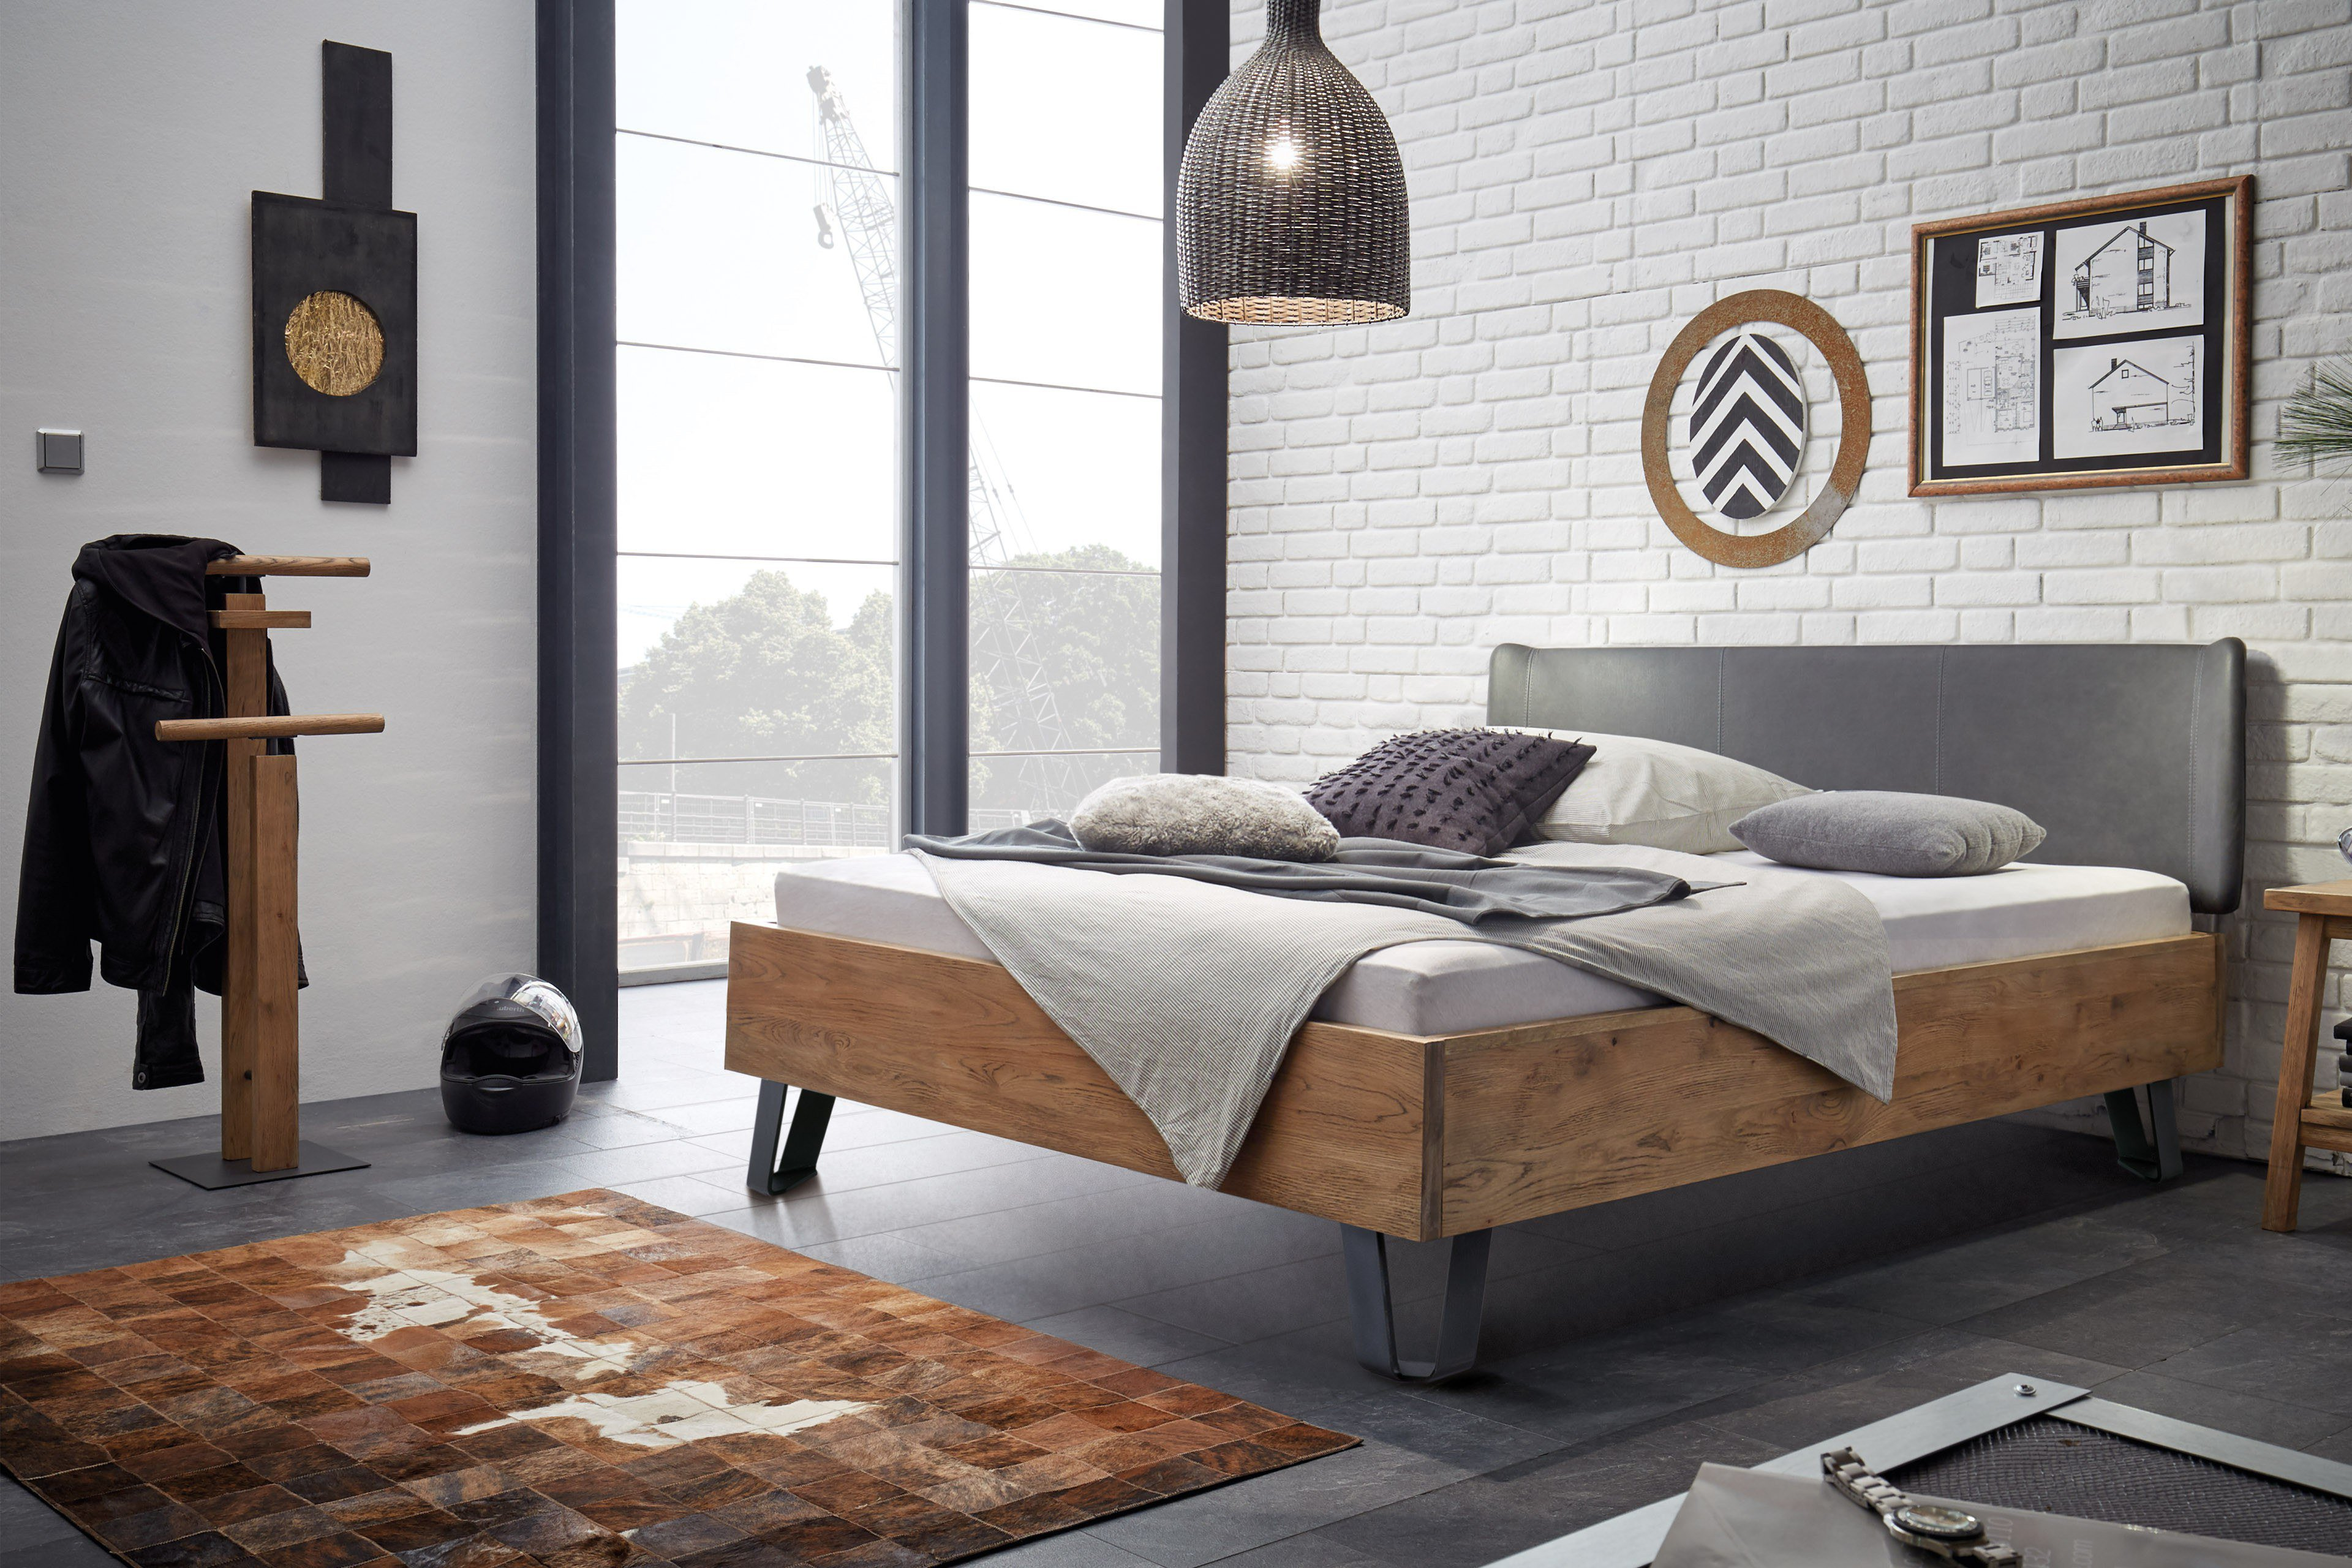 bett industrial bett industrial mood pfister betten industrial design bett altiers ein. Black Bedroom Furniture Sets. Home Design Ideas